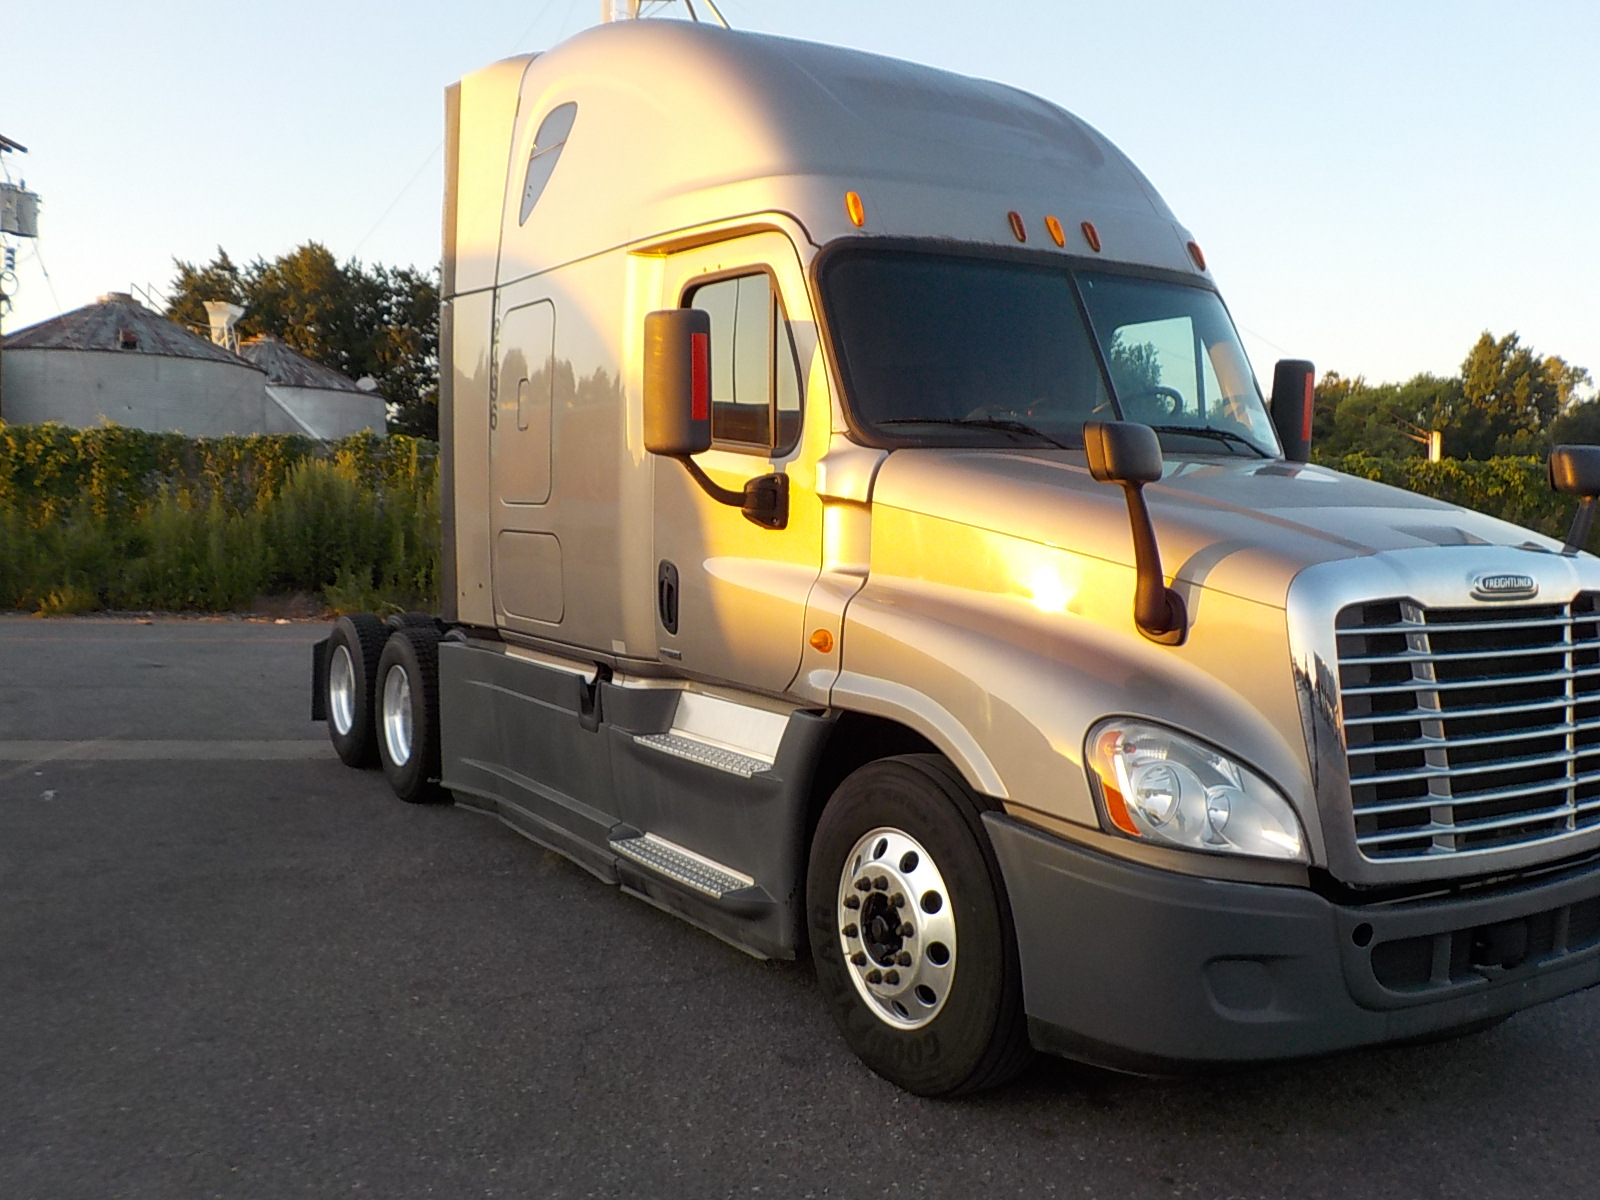 USED 2014 FREIGHTLINER CASCADIA SLEEPER TRUCK #131781